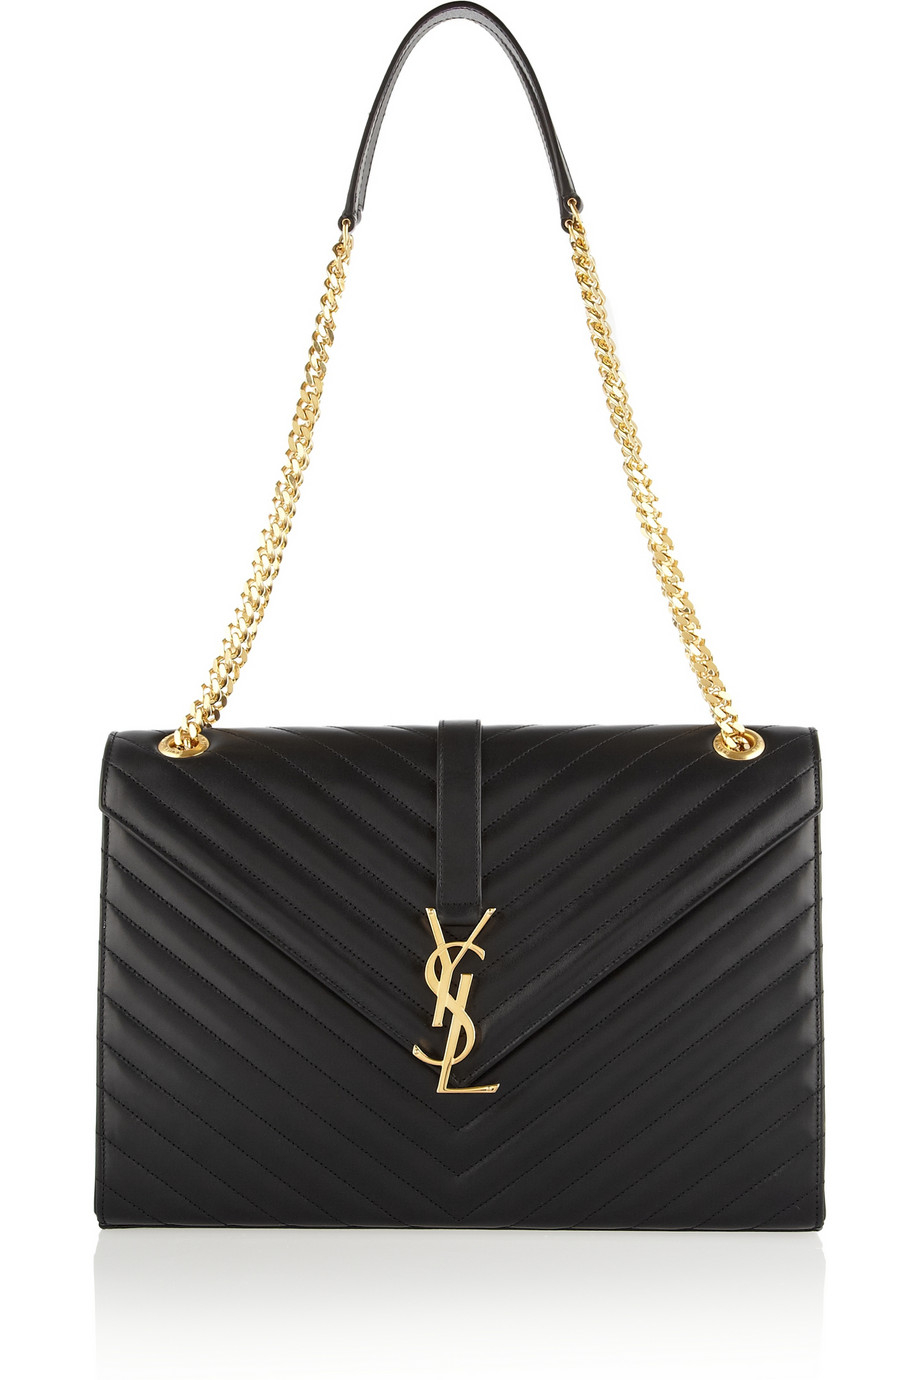 saint laurent women 39 s monogram medium shoulder bag in black lyst. Black Bedroom Furniture Sets. Home Design Ideas